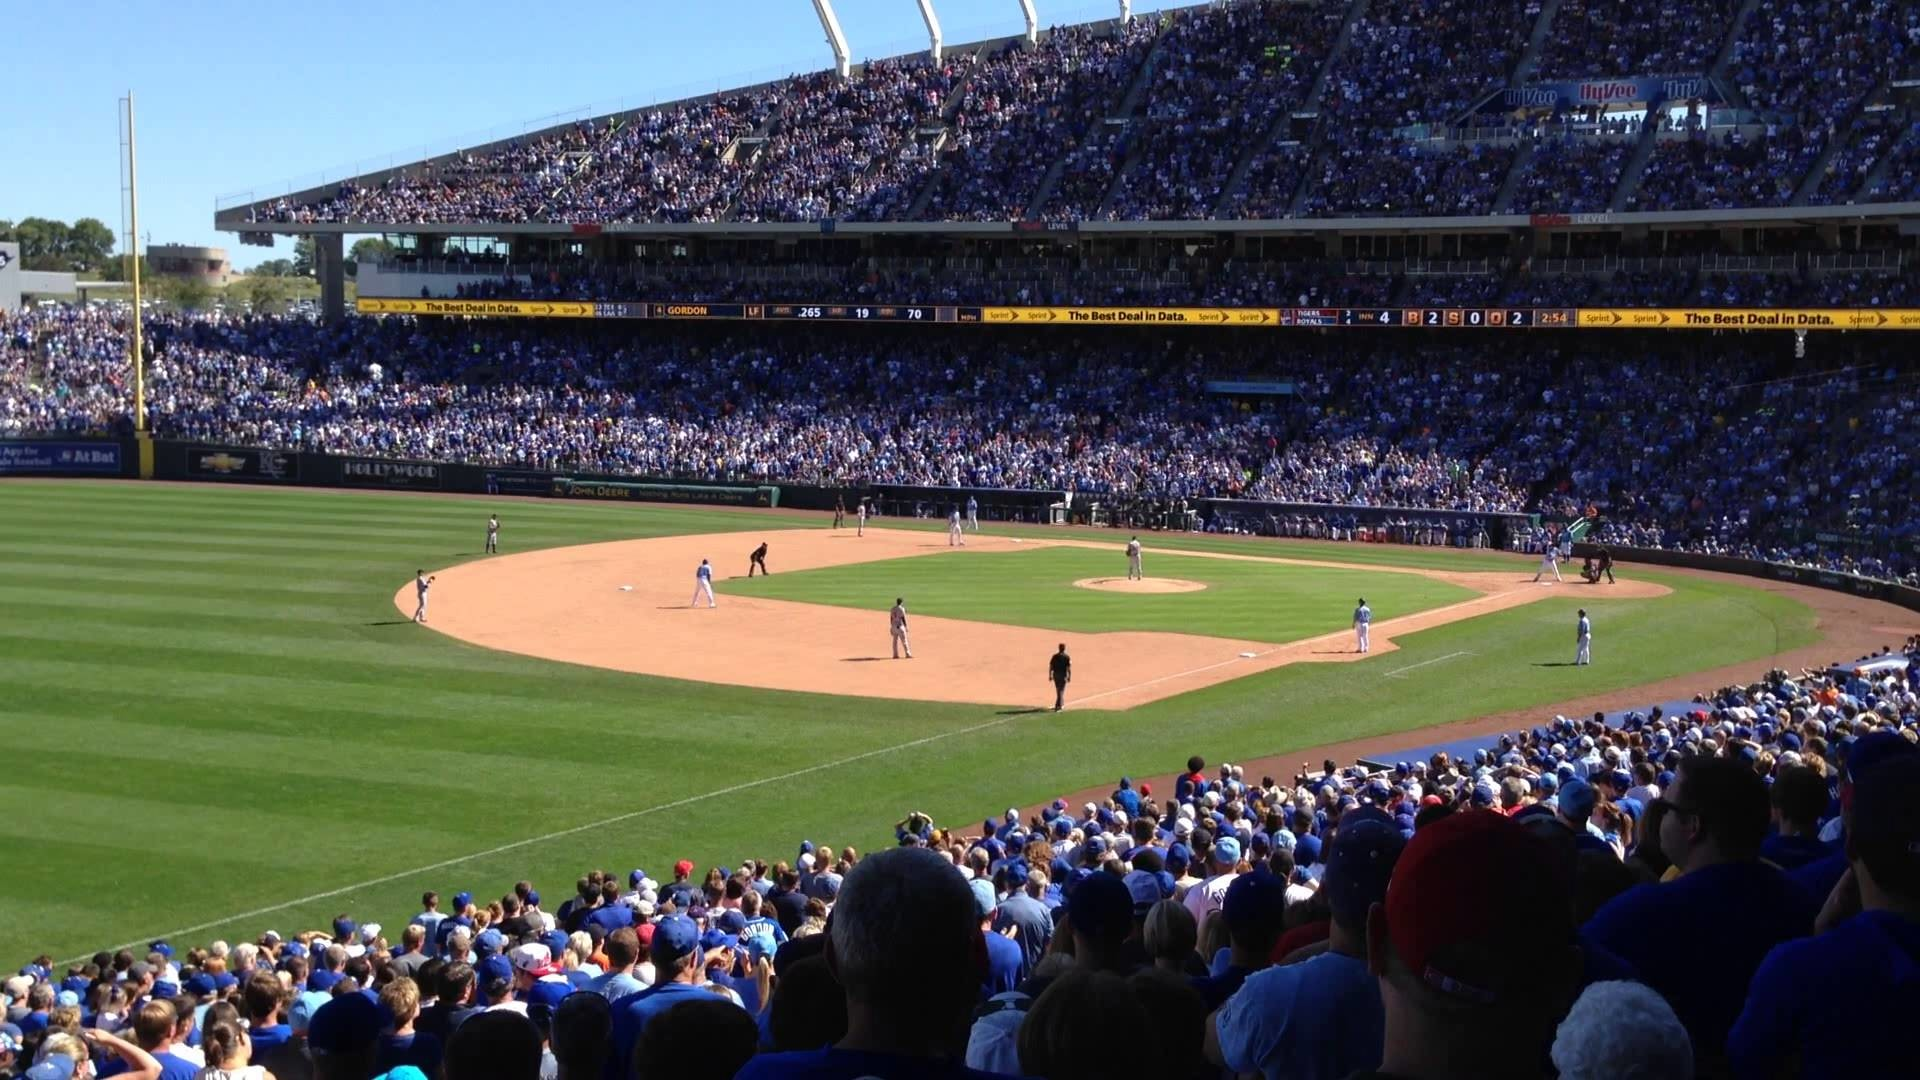 Final Kansas City (KC) Royals home game, vs Detroit Tigers. Gorgon strikes  out with bases loaded.